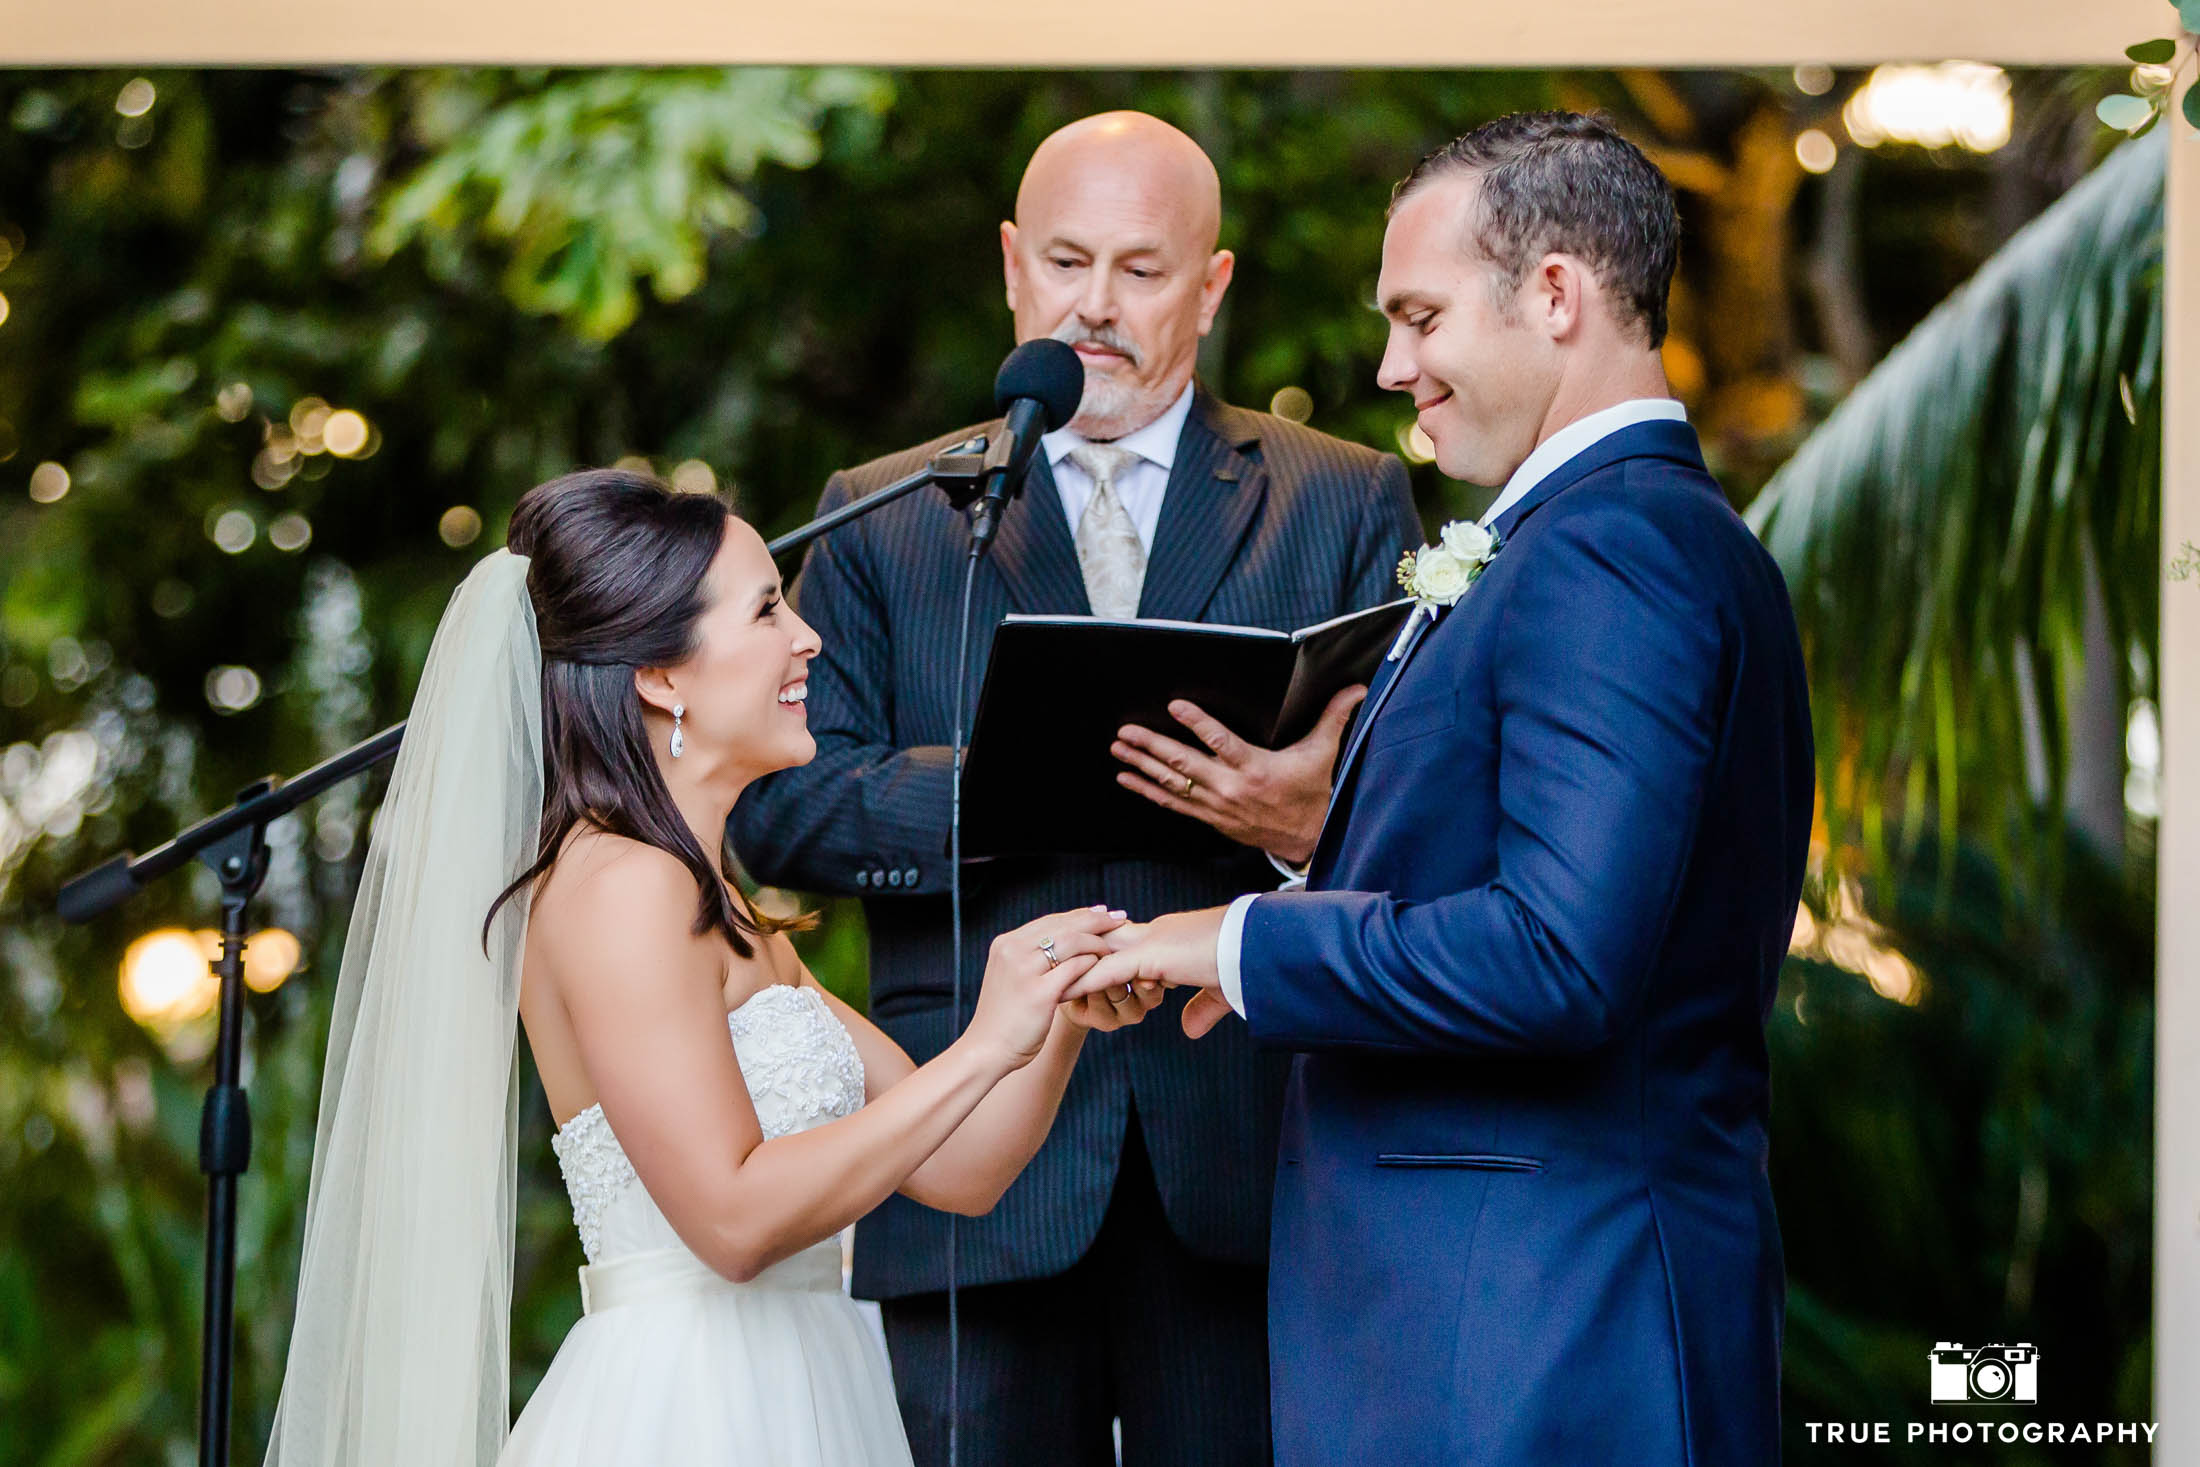 Bride places wedding ring on groom's hand